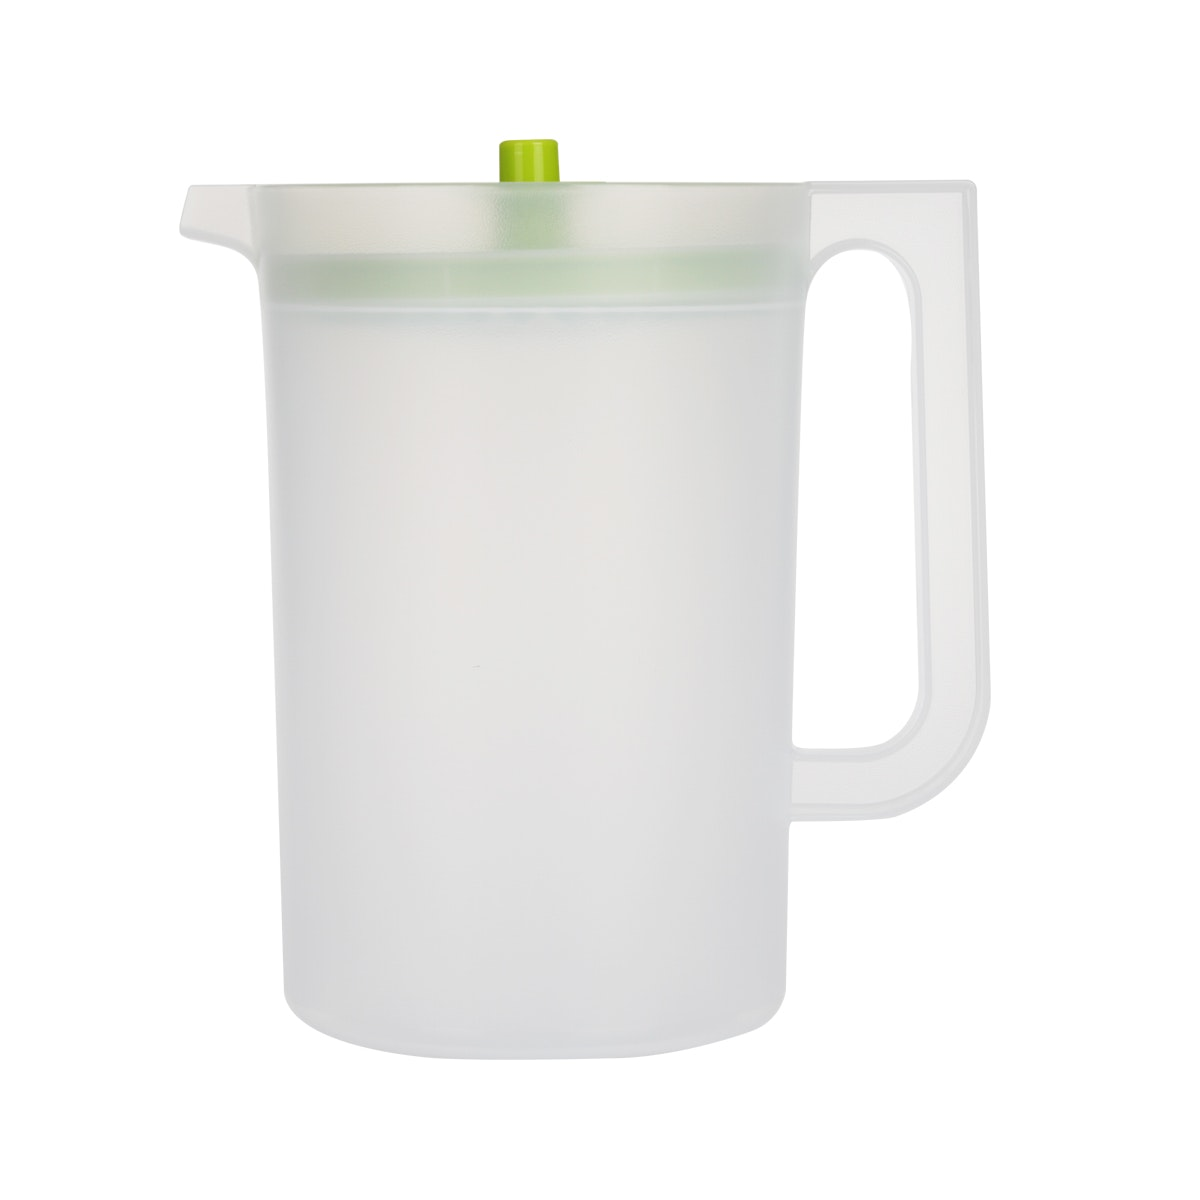 Tupperware Blossom 2L Pitcher